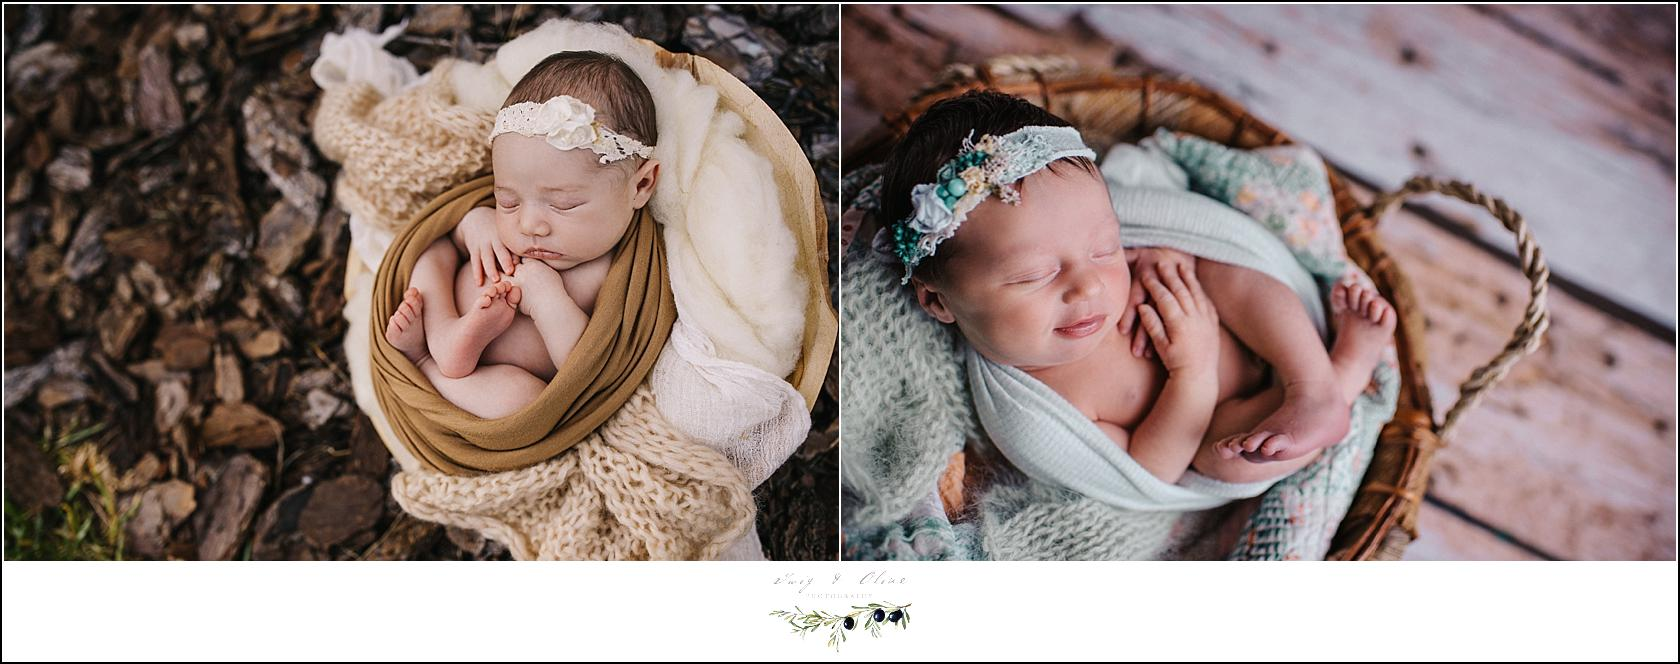 Babies in headbands